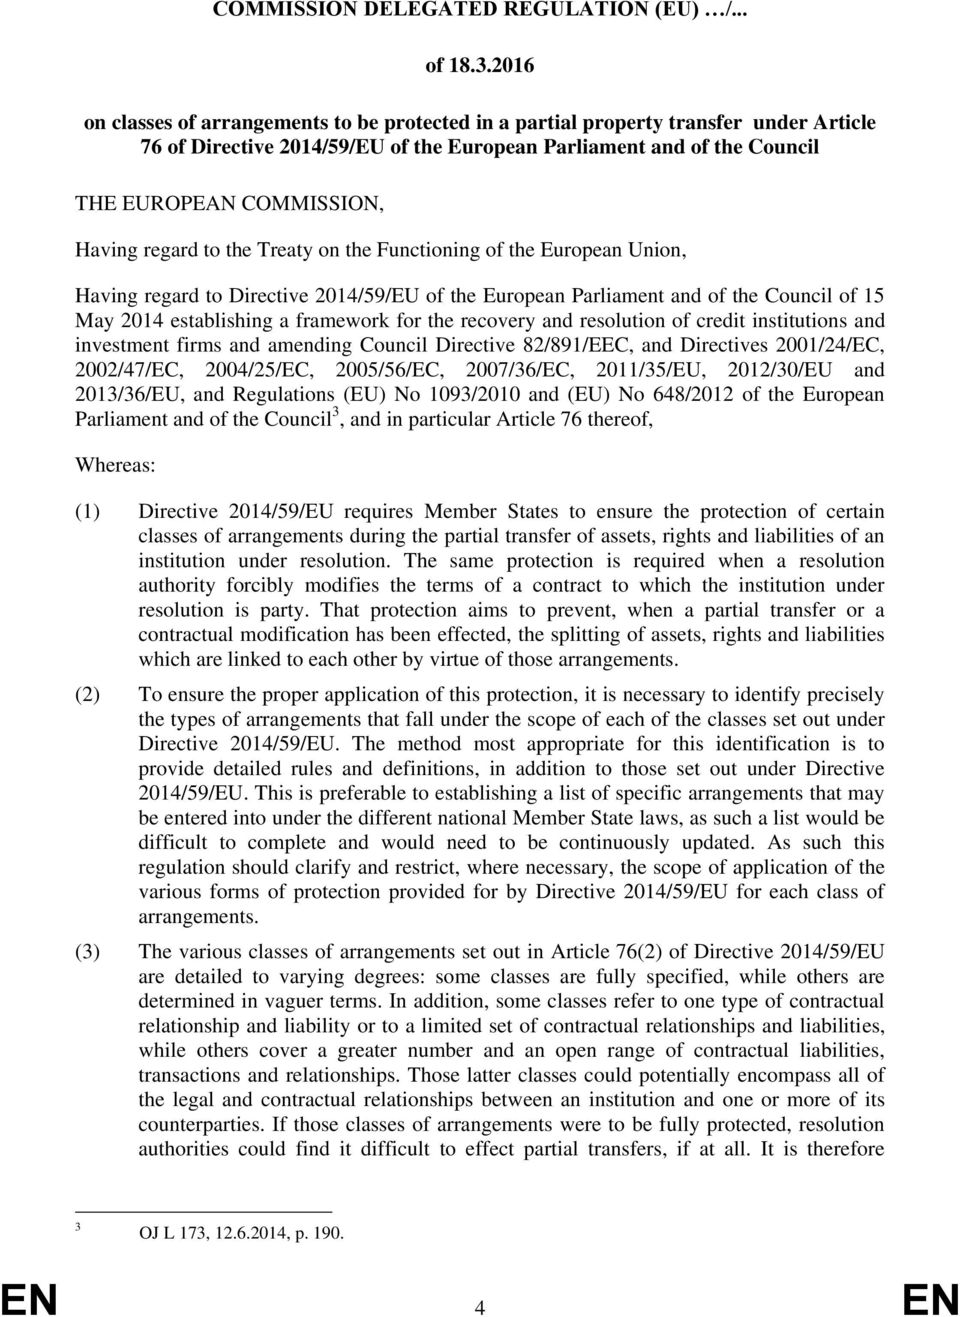 regard to the Treaty on the Functioning of the European Union, Having regard to Directive 2014/59/EU of the European Parliament and of the Council of 15 May 2014 establishing a framework for the